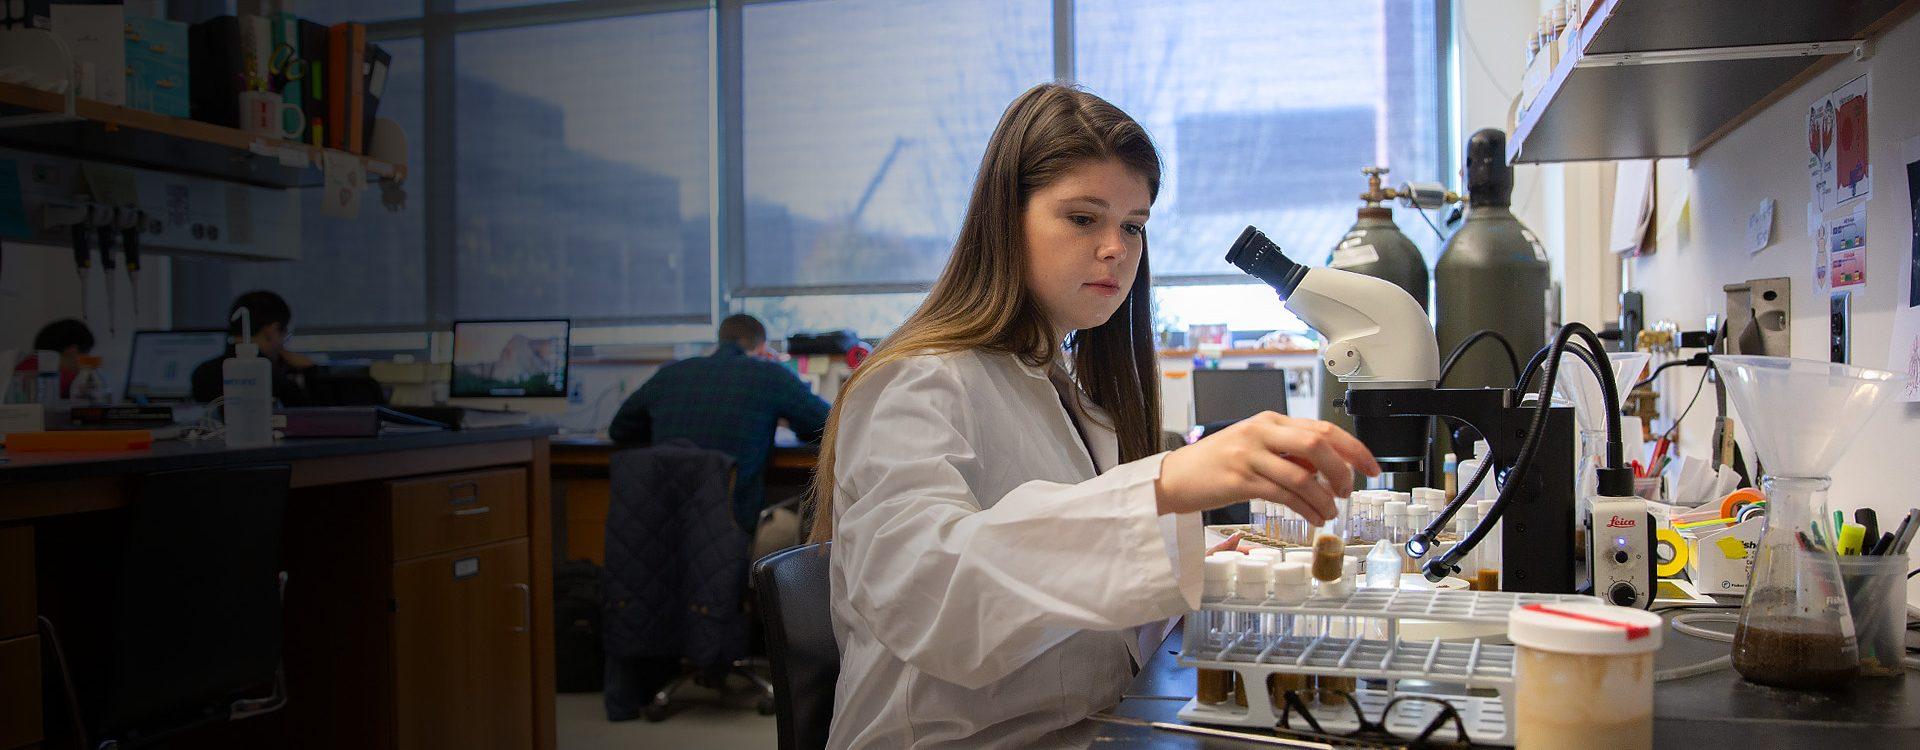 A student analyzes samples in a research lab